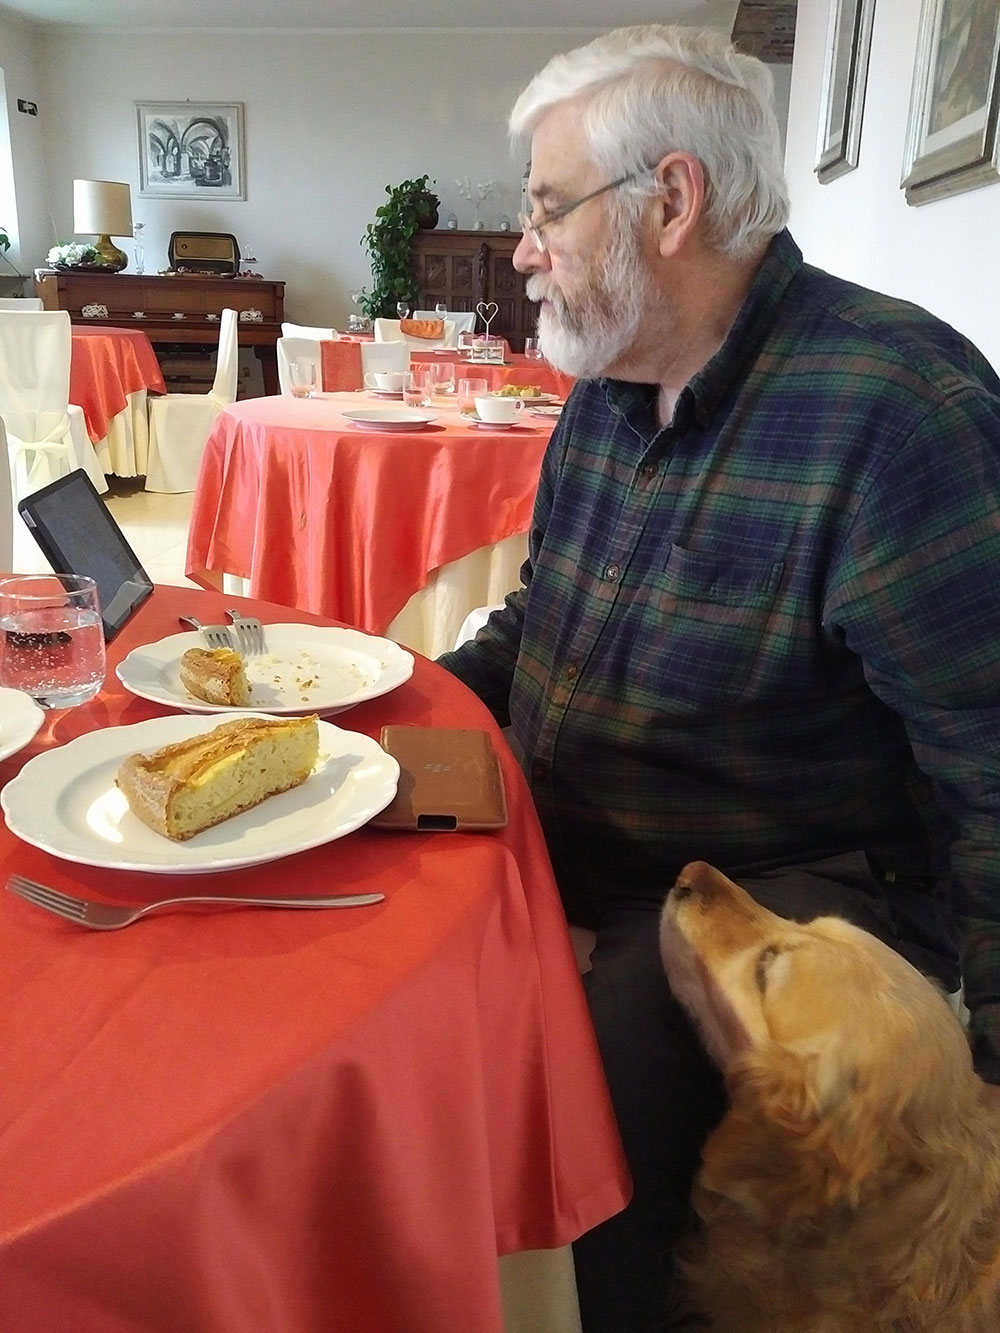 At the hotel in Roppolo Courier M enjoyed a fine breakfast with a side order of Scrabble and Golden Retriever